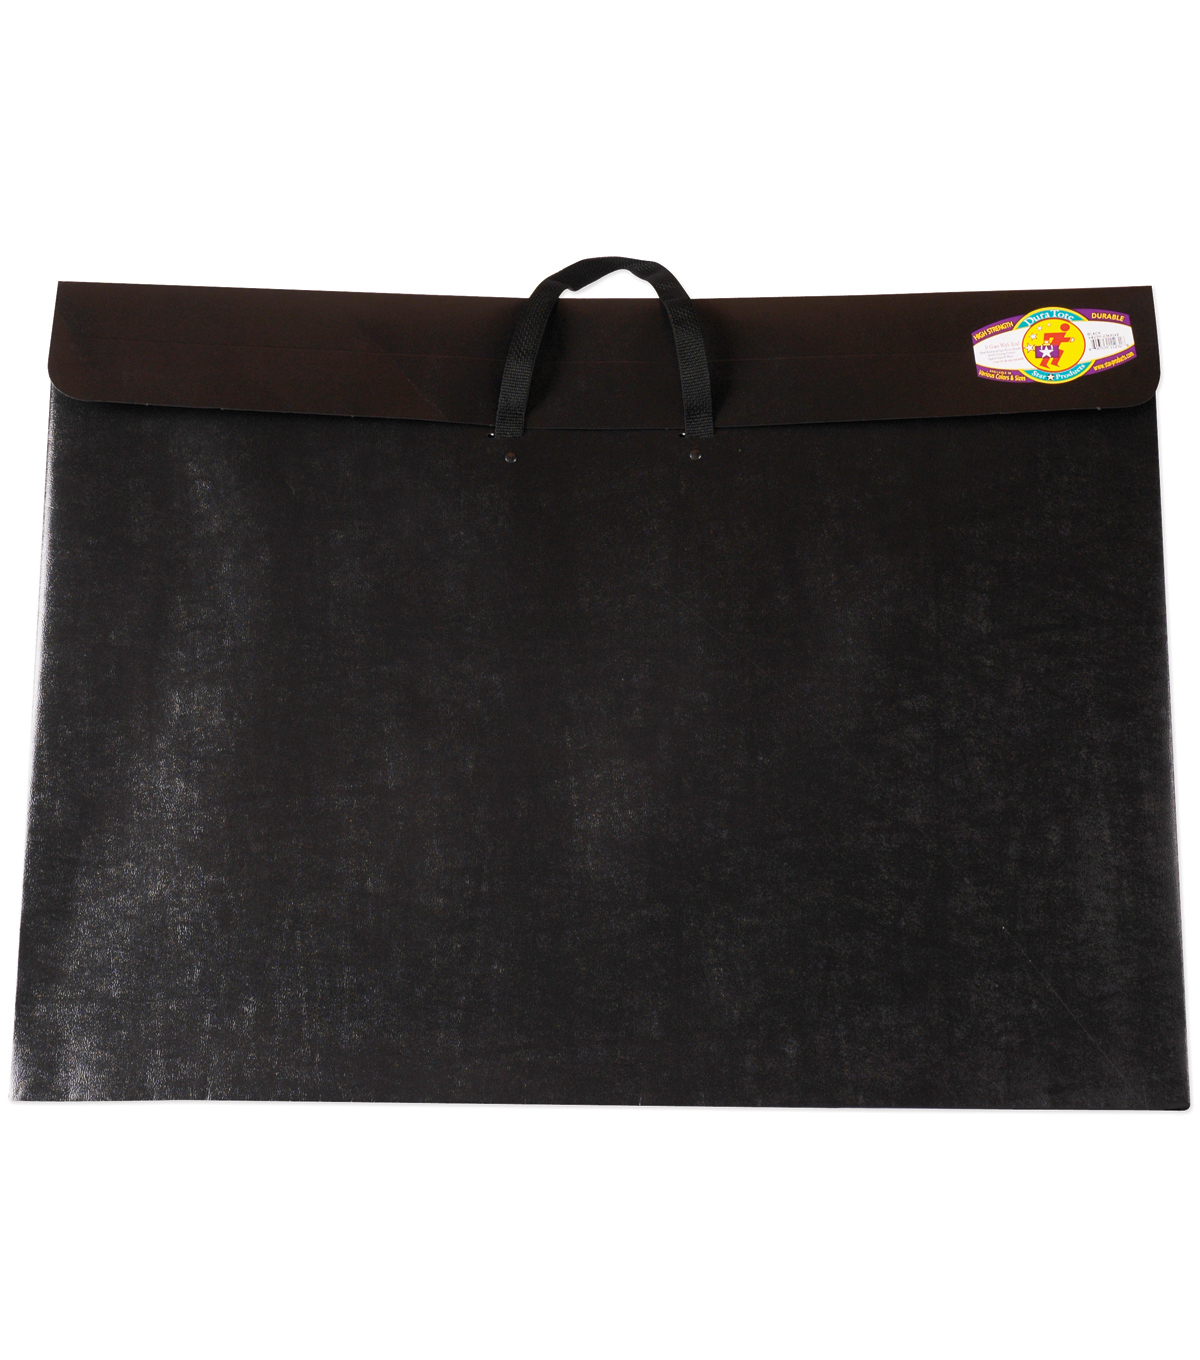 Dura-Tote Classic Poly Portfolio W/Soft Handle 23\u0022x31\u0022-Black